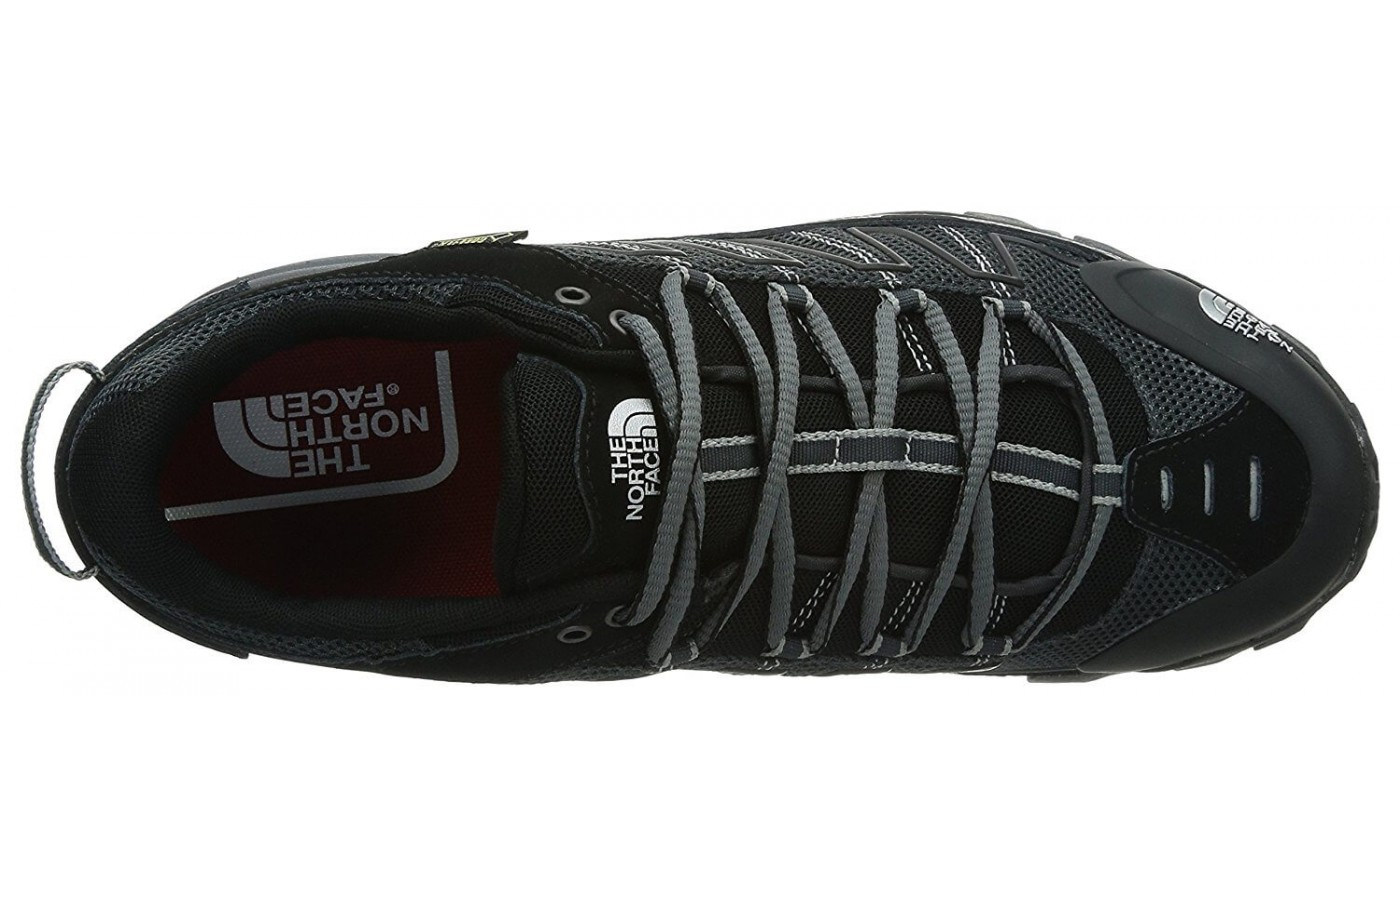 The The North Face Ultra 110 GTX has a Goretex waterproof membrane